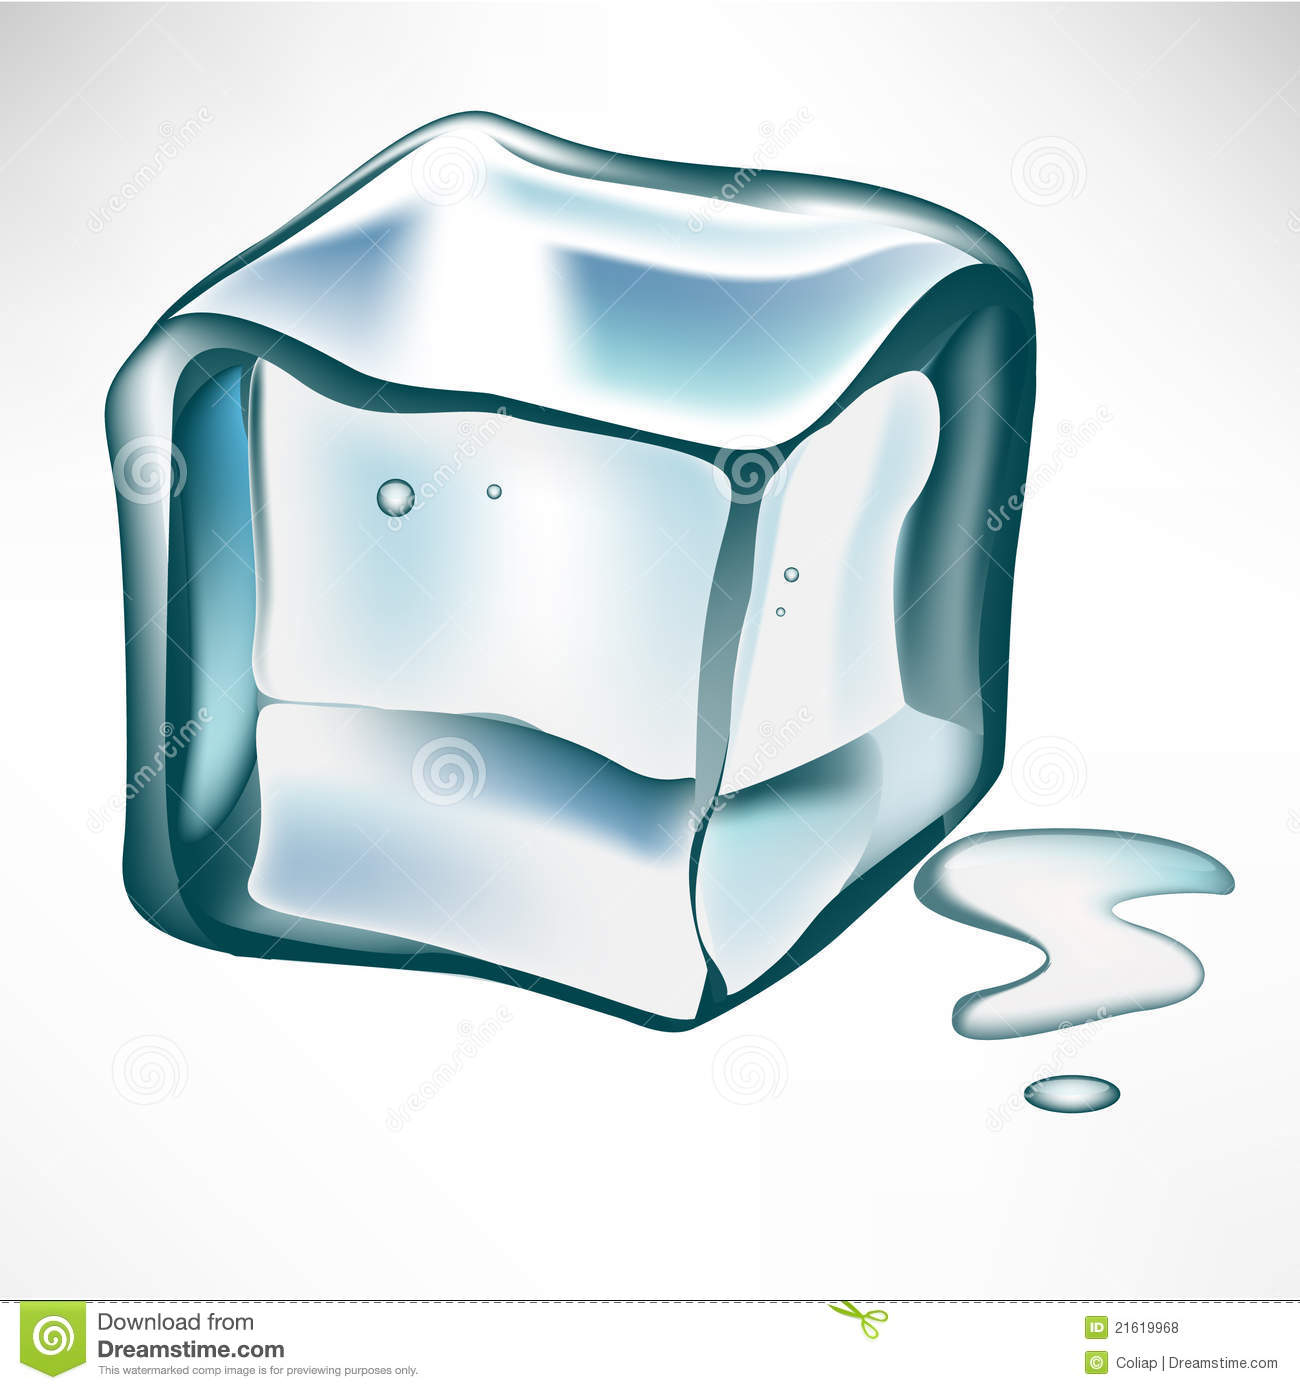 Ice clipart #8, Download drawings